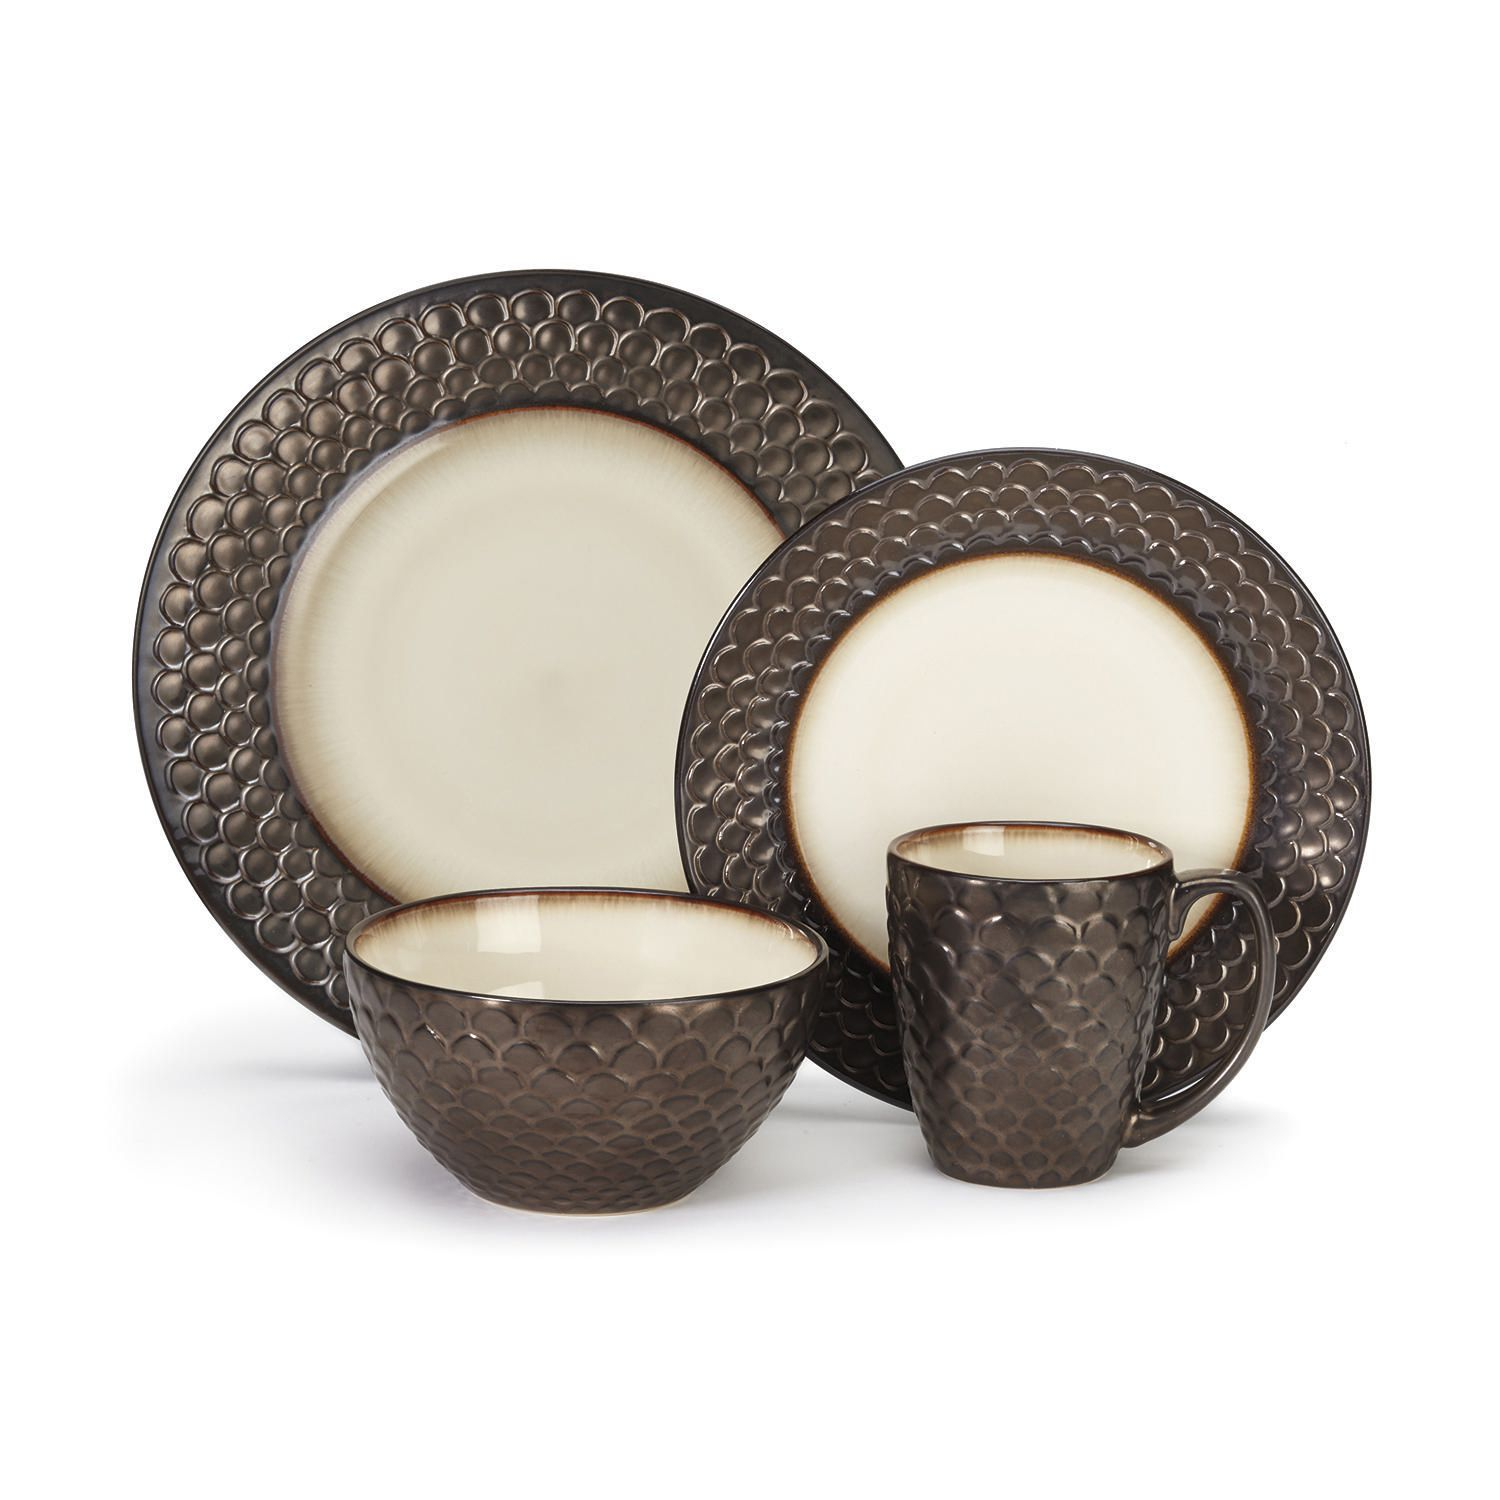 Jcpenney Plates | Stoneware Dinnerware Sets | Discount Dinnerware Sets